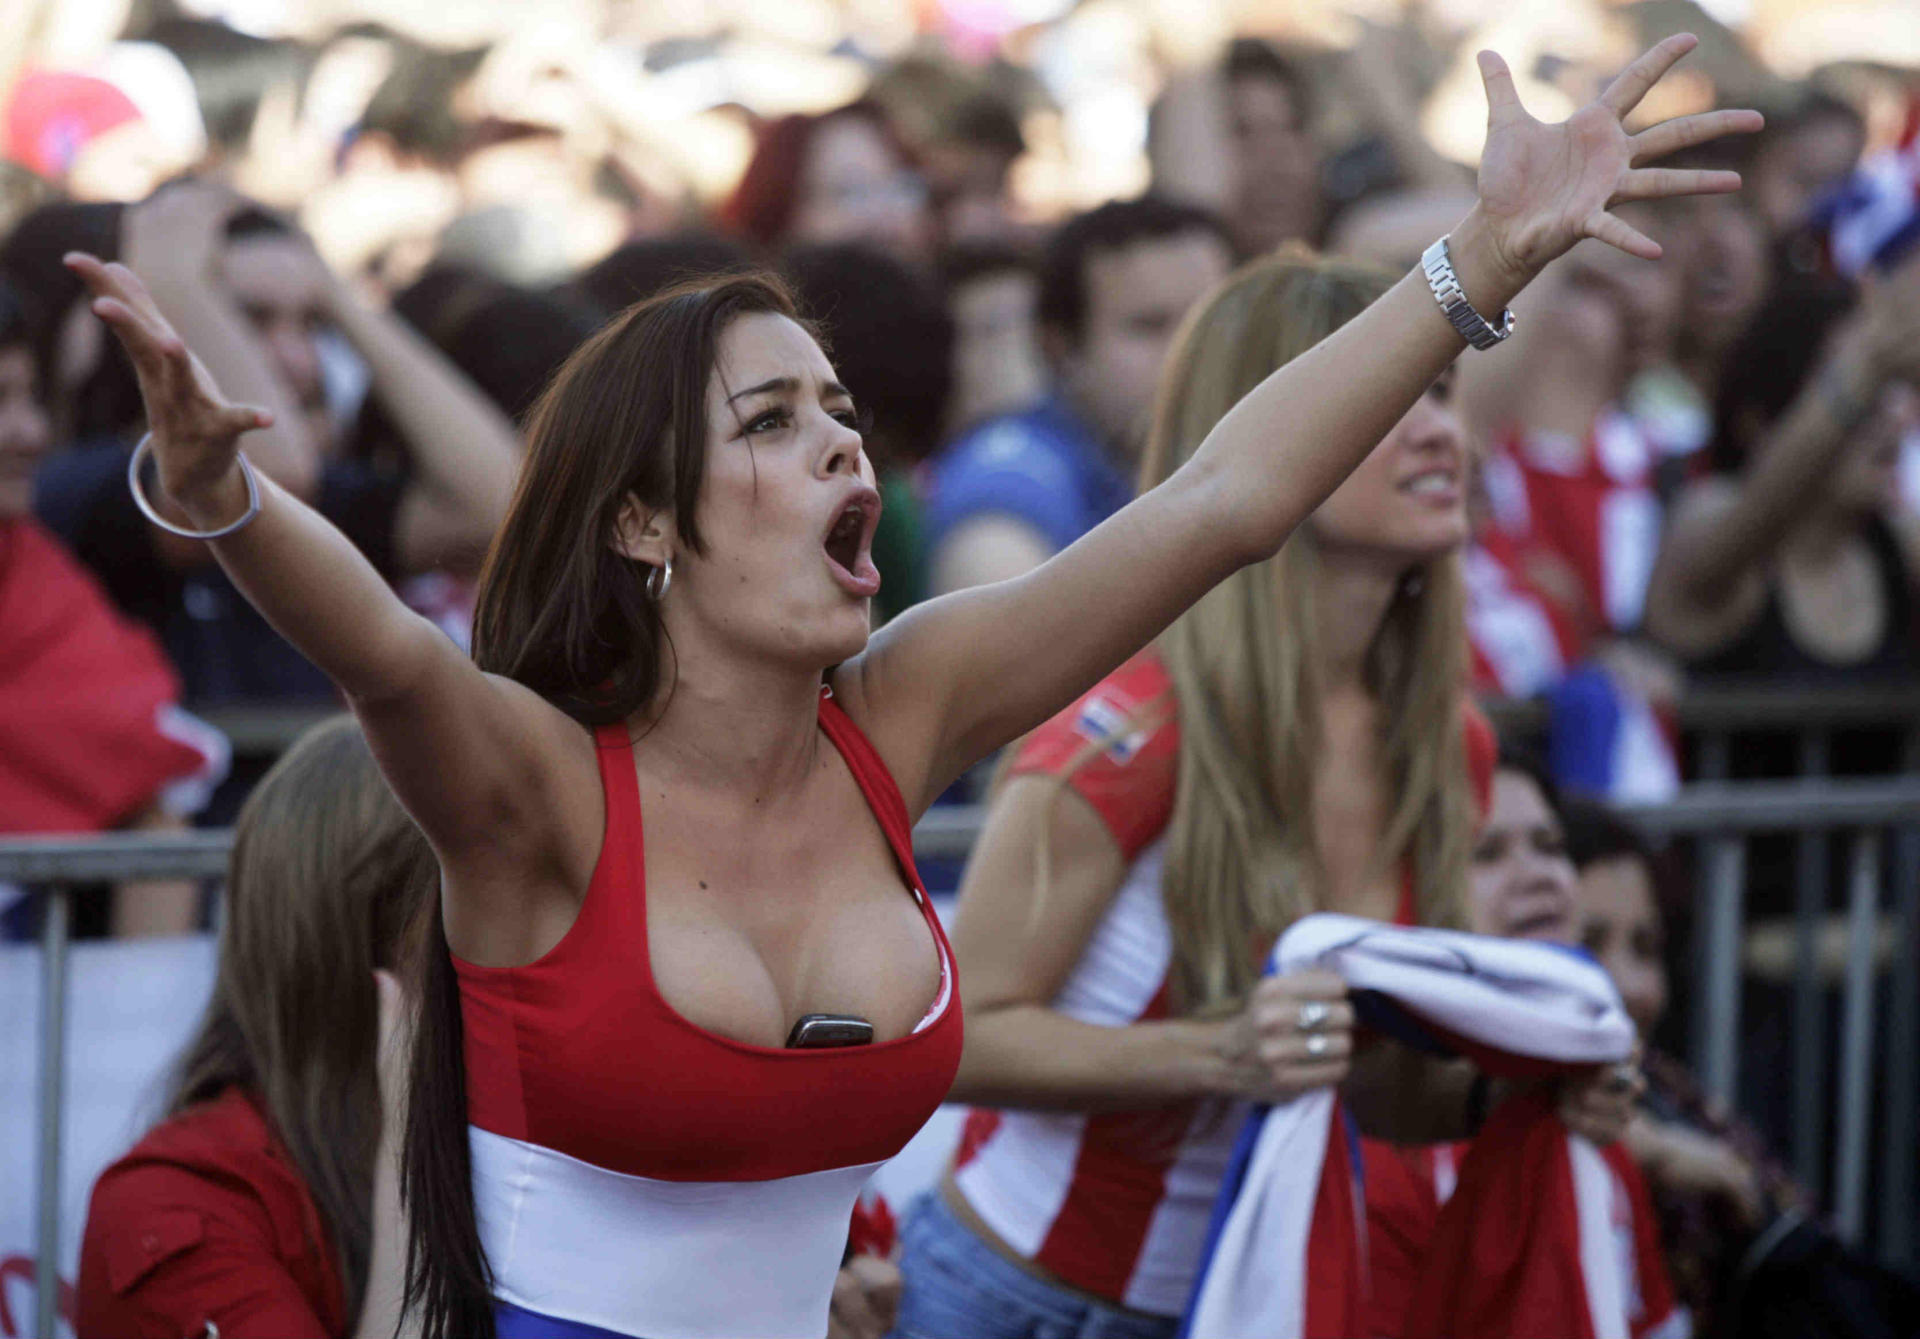 Football fans experience 'dangerous' levels of stress